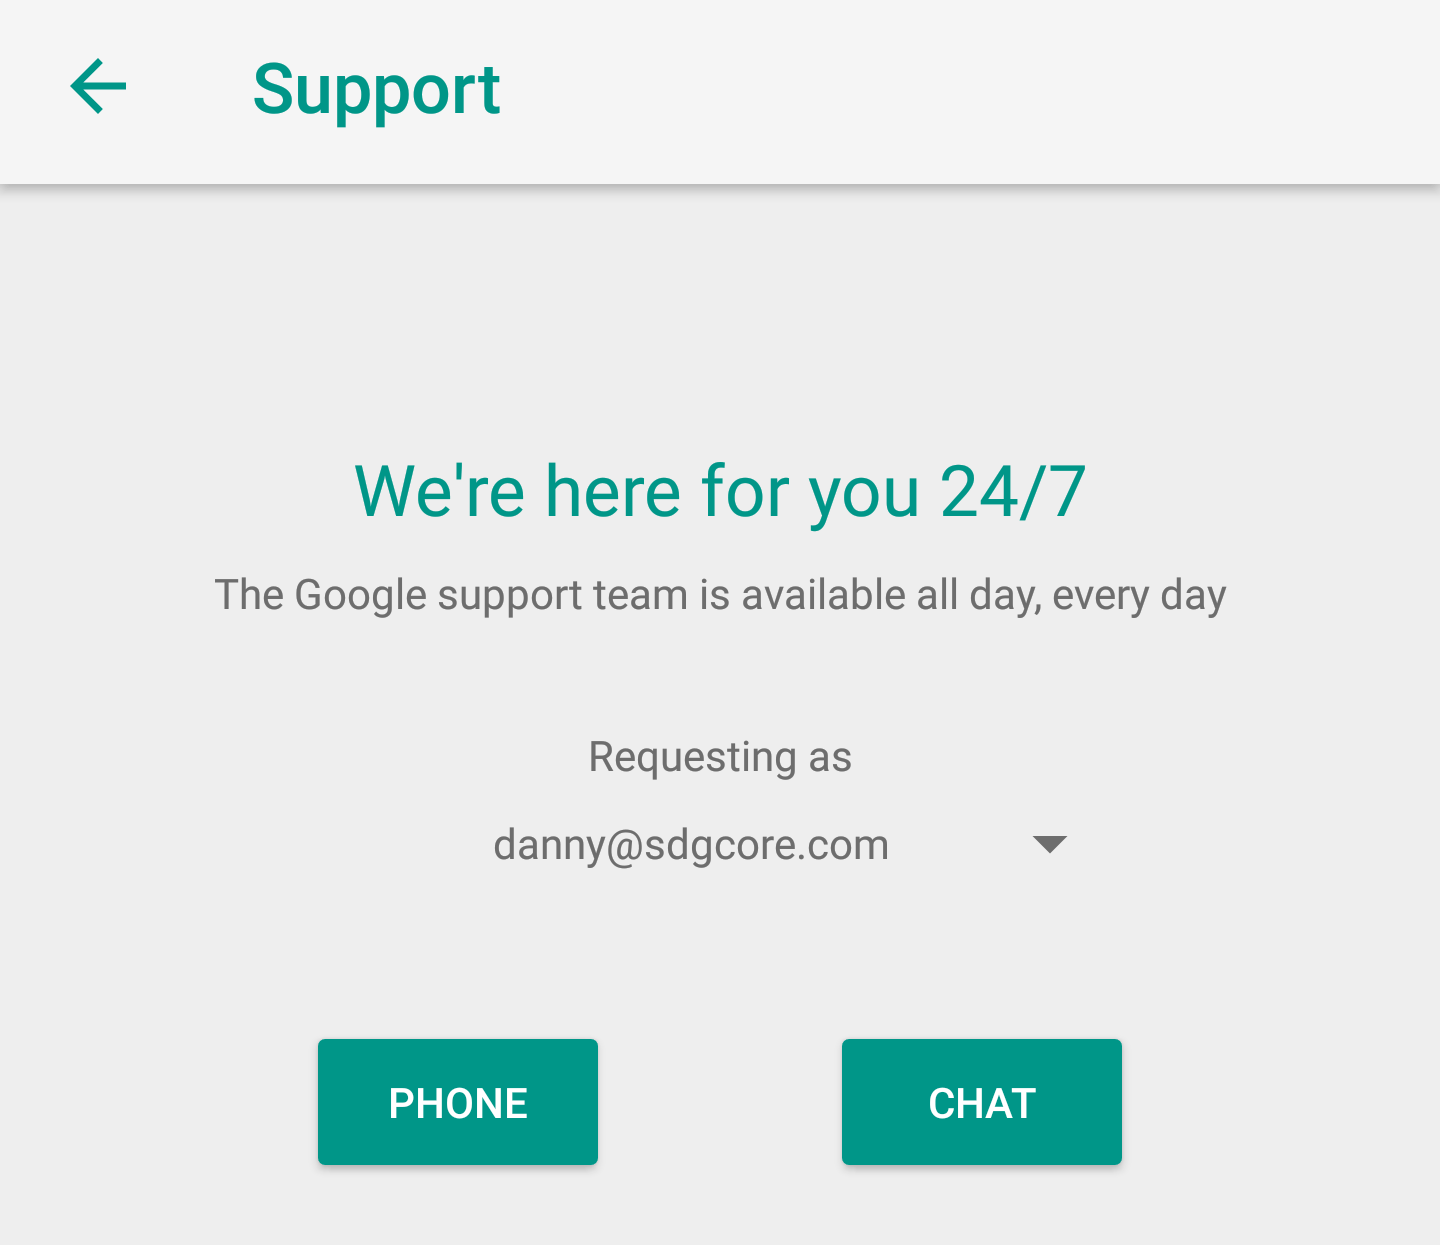 Google support